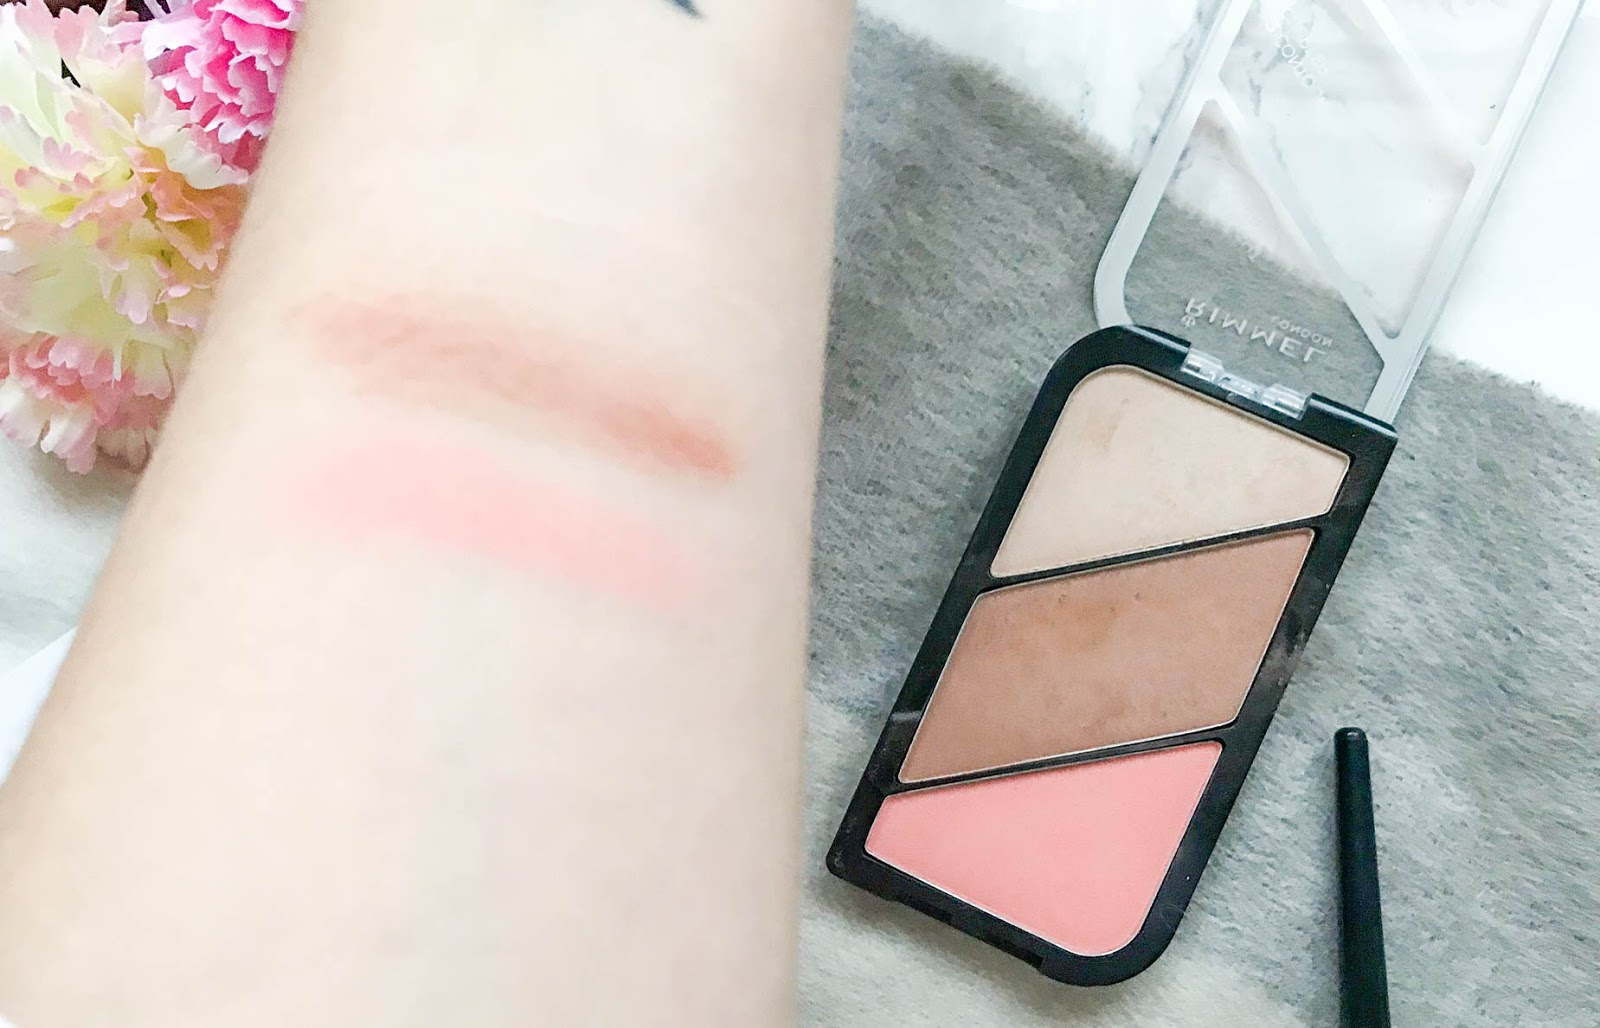 Rimmel Kate Moss Sculpting Palette in 002 Coral Glow